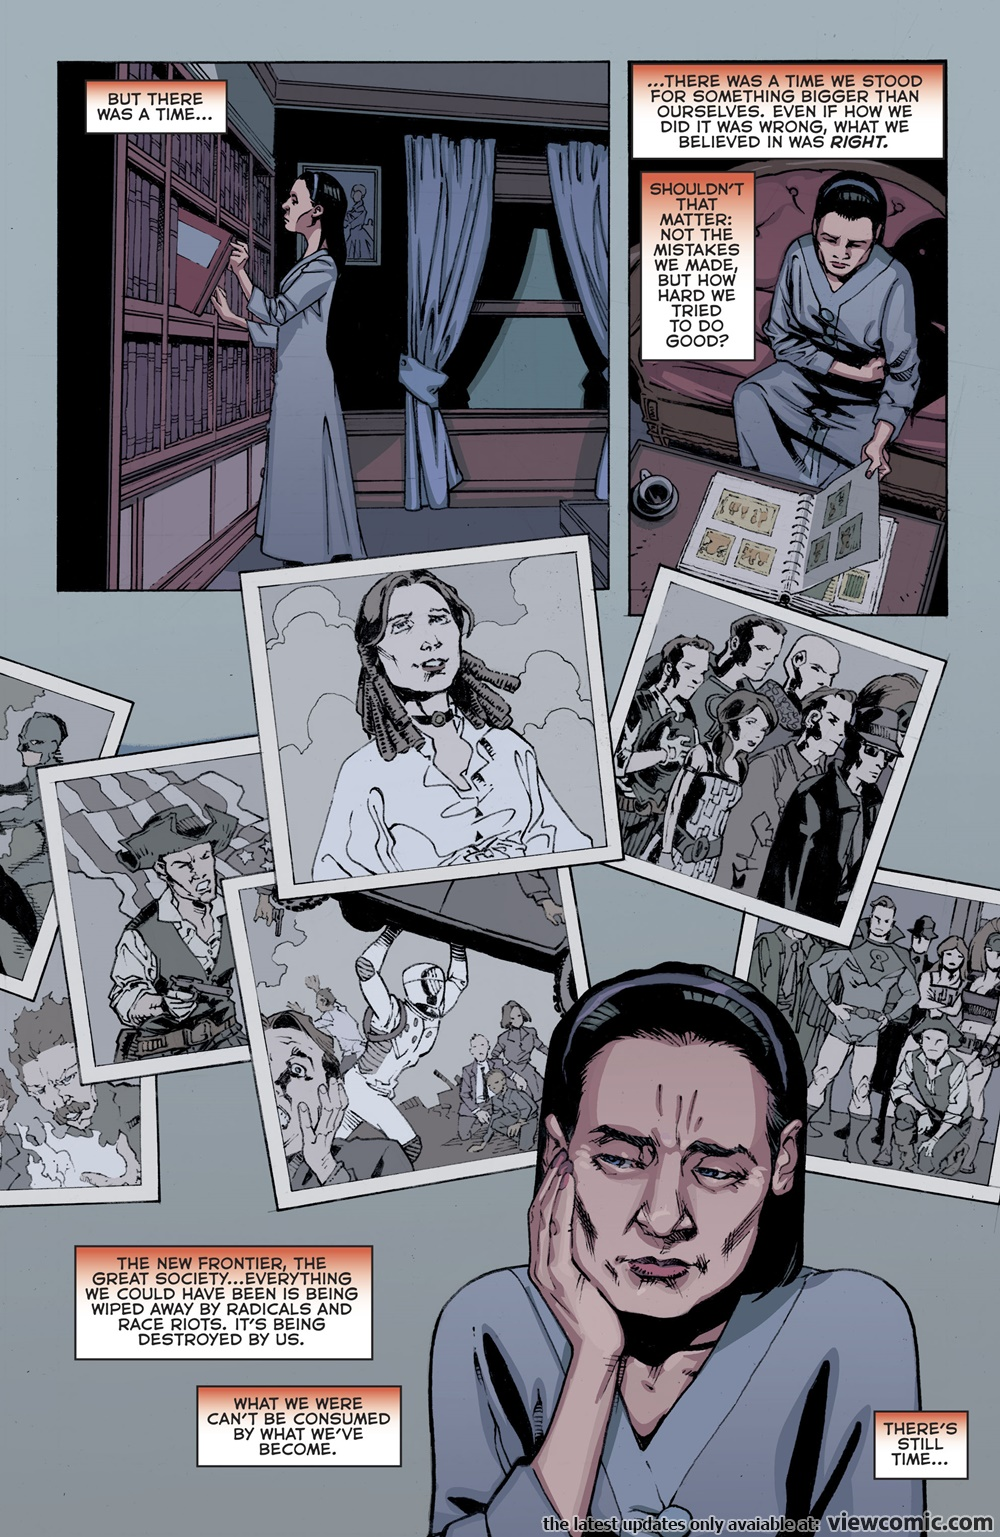 The American Way – Those Above and Those Below 002 (2017) | Vietcomic.net reading comics online for free